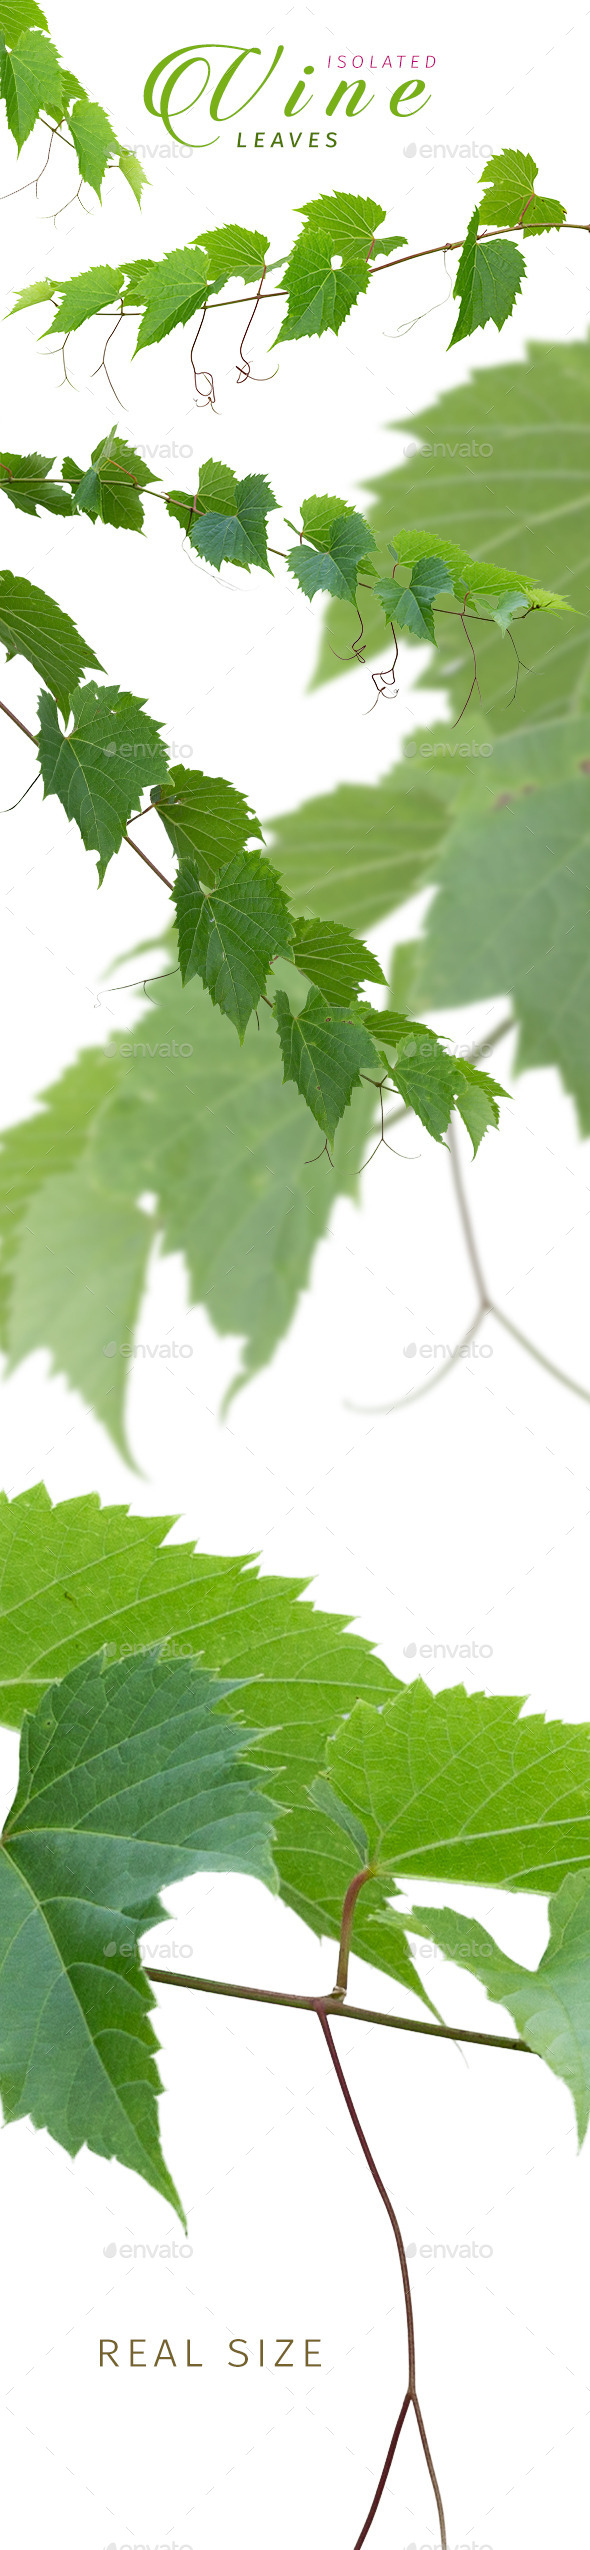 Isolated Vine Leaves - Nature & Animals Isolated Objects